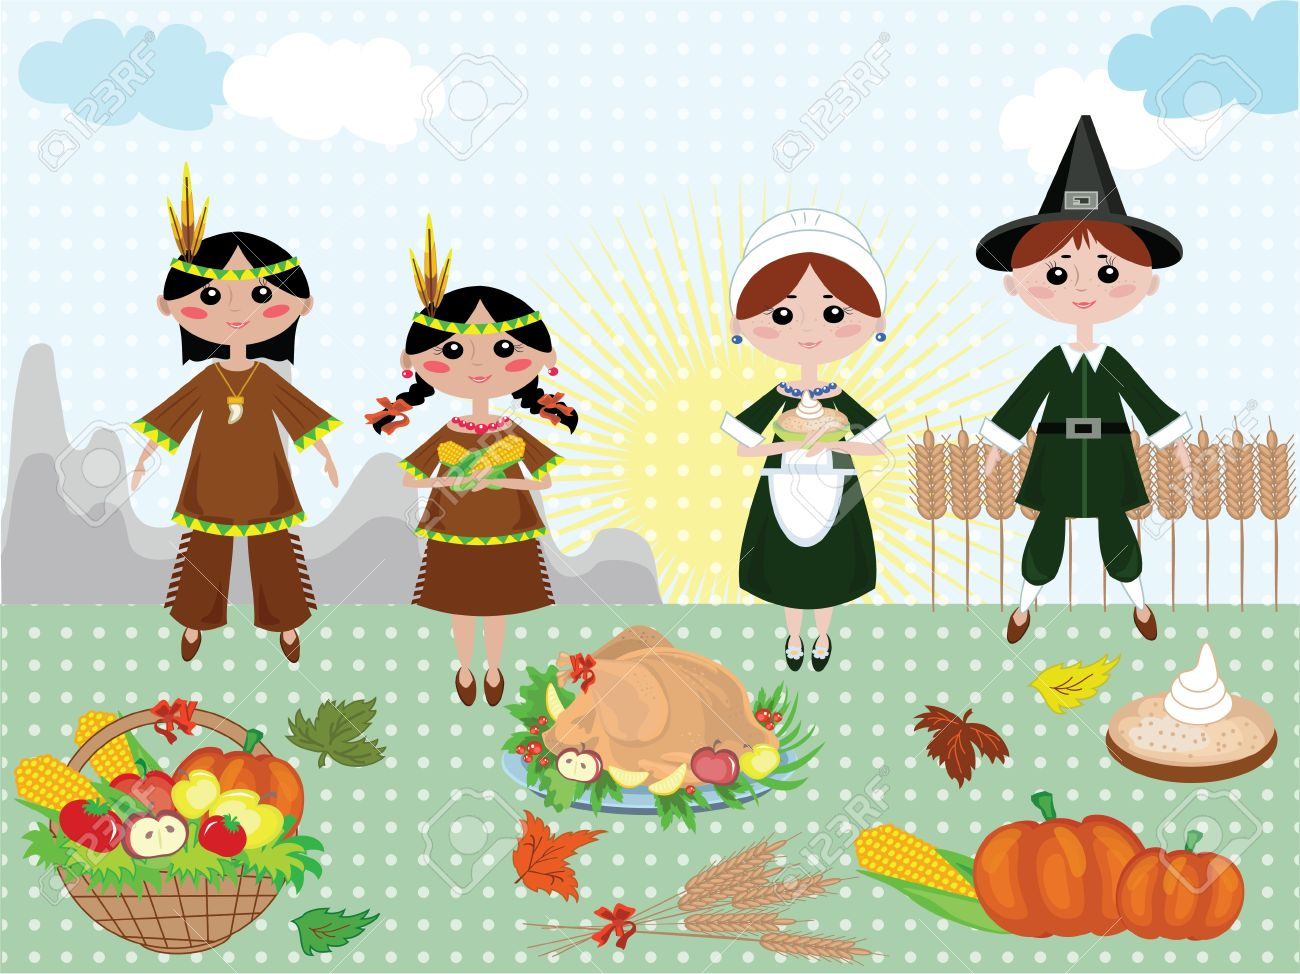 Thanksgiving day,background with indians and piligrims Stock Vector - 10608958